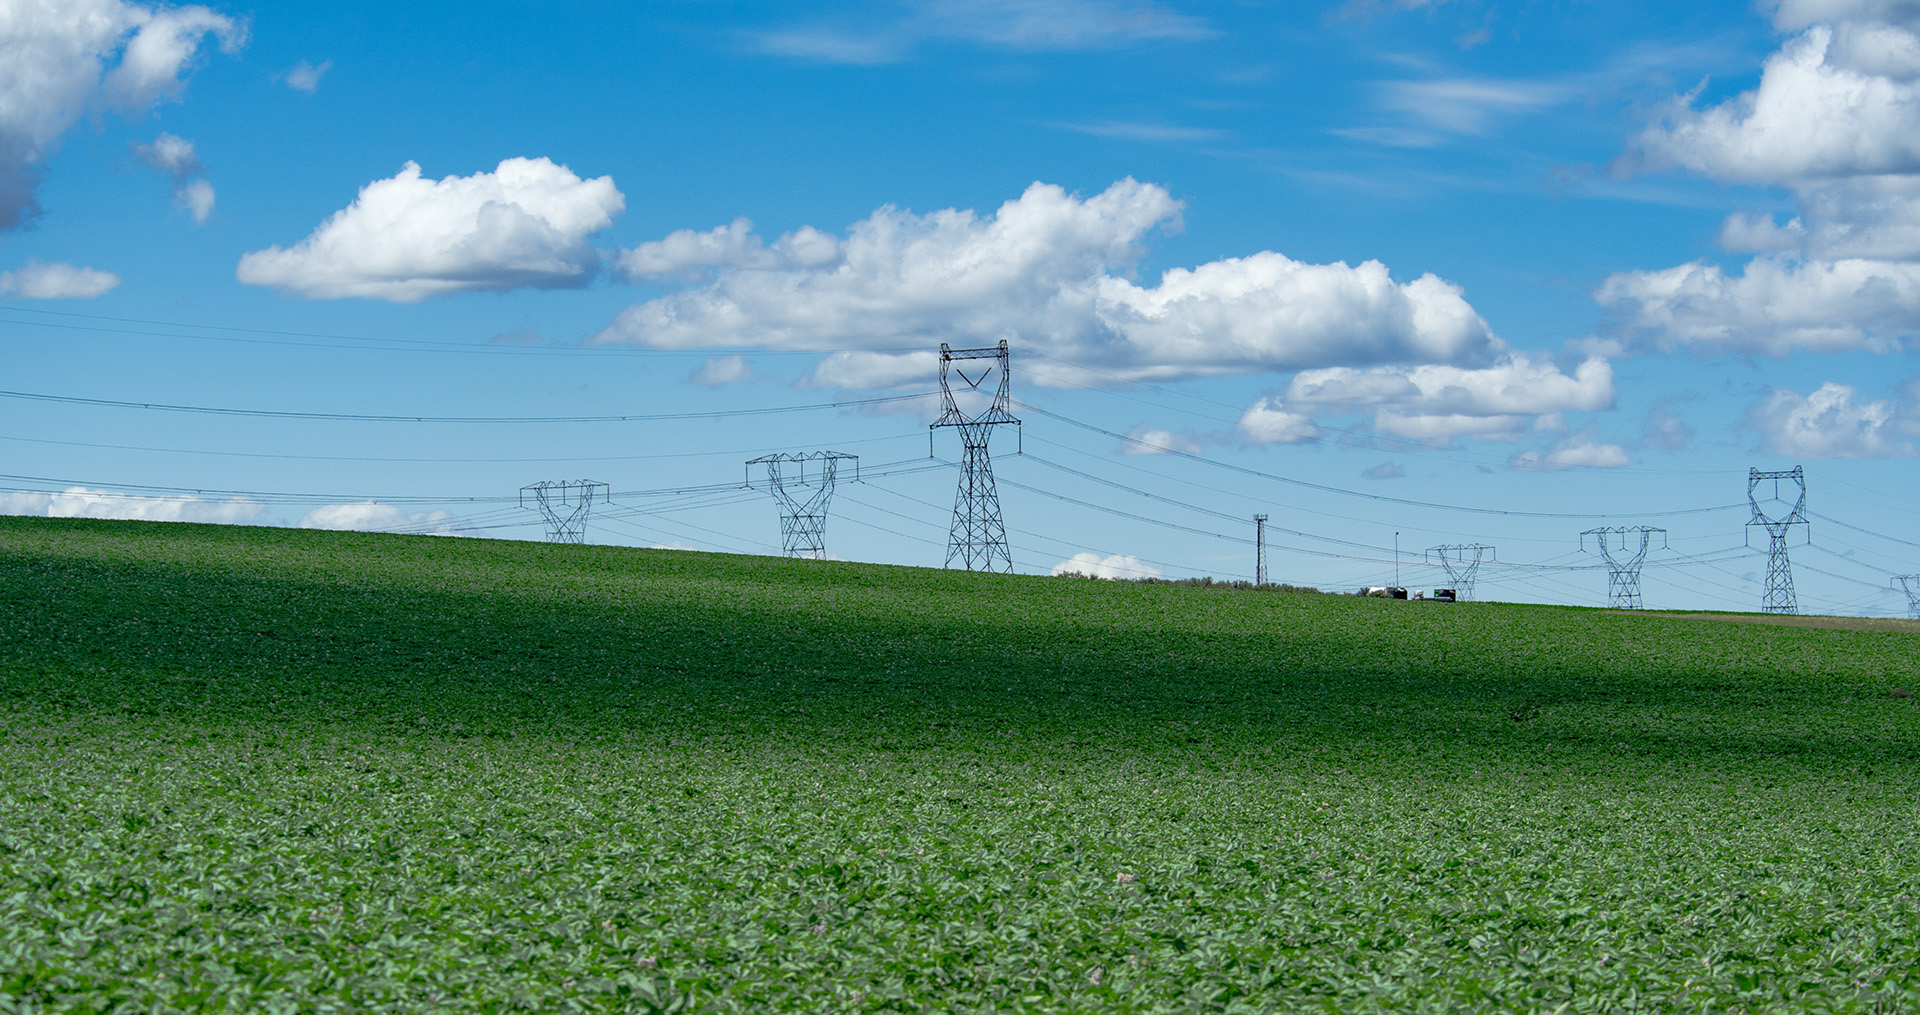 transmission lines running through a field